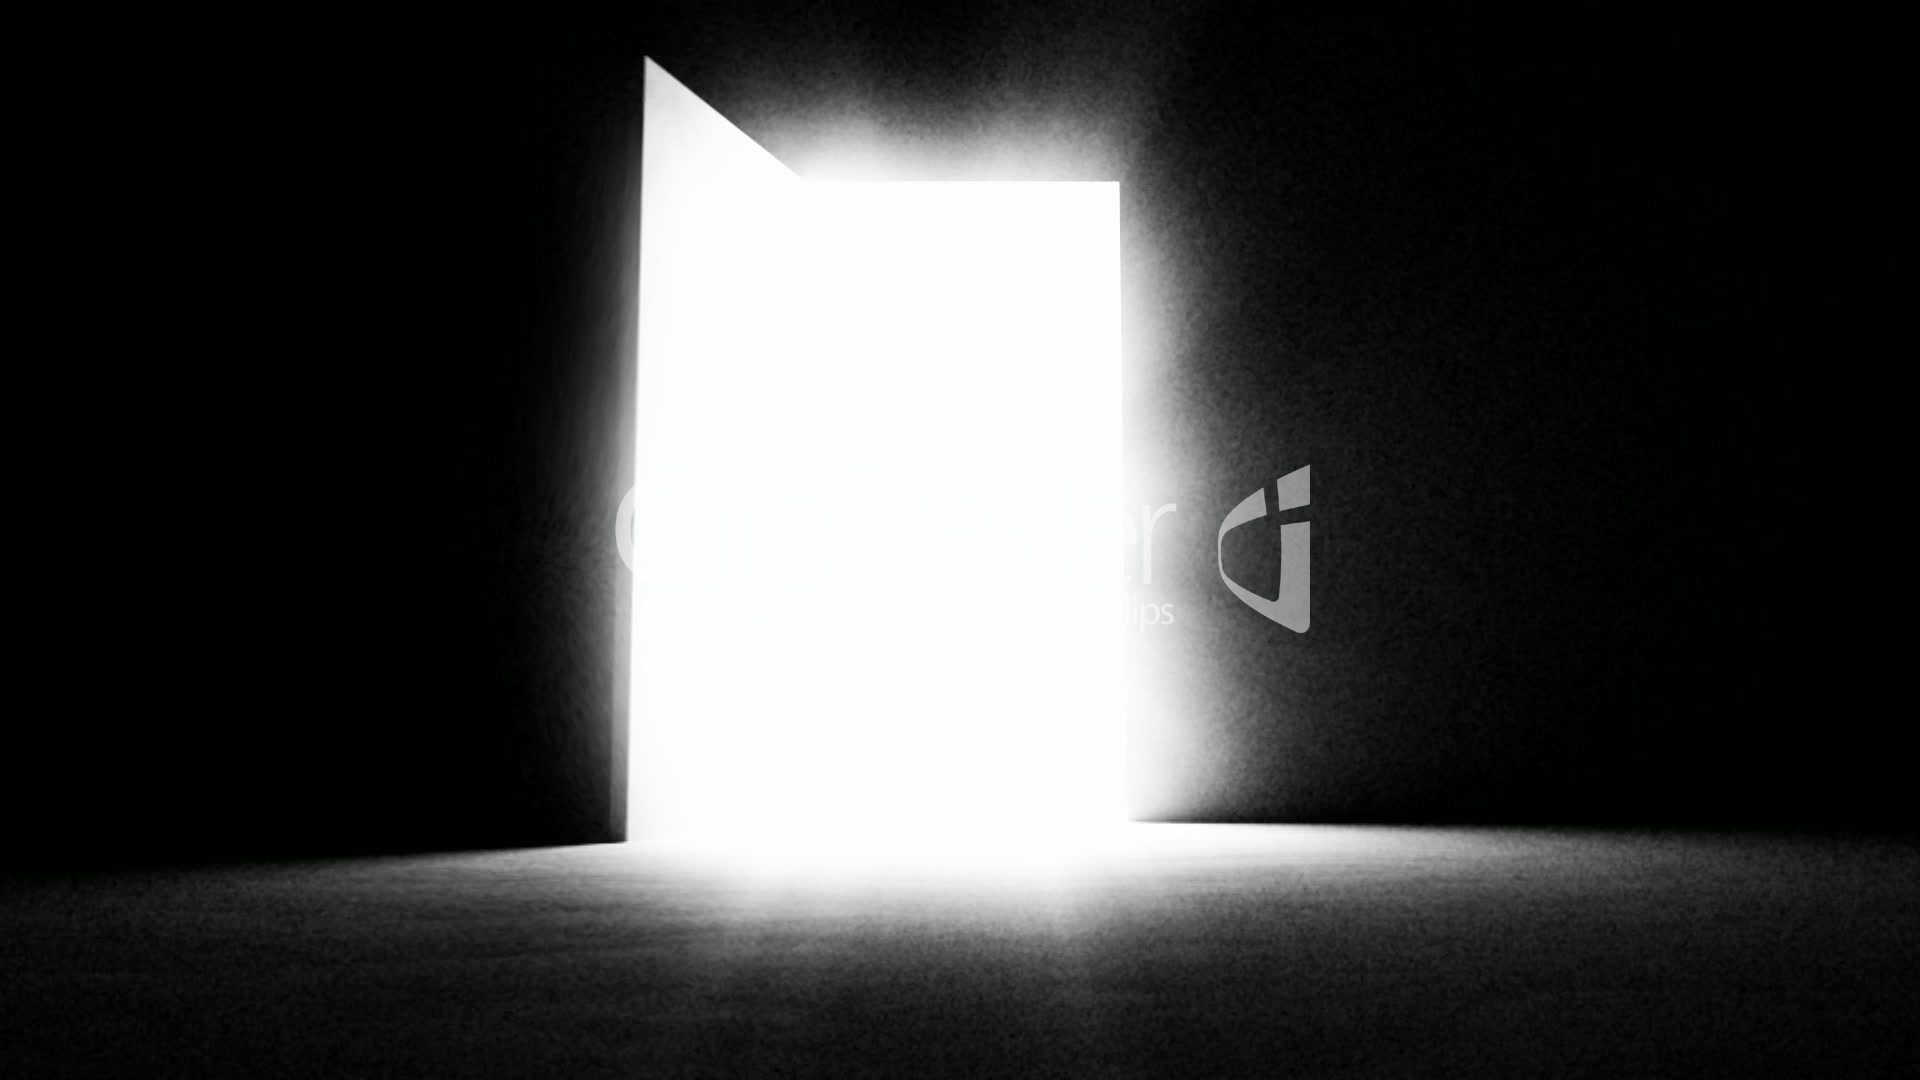 A black door opening and letting in white light royalty for Door with light